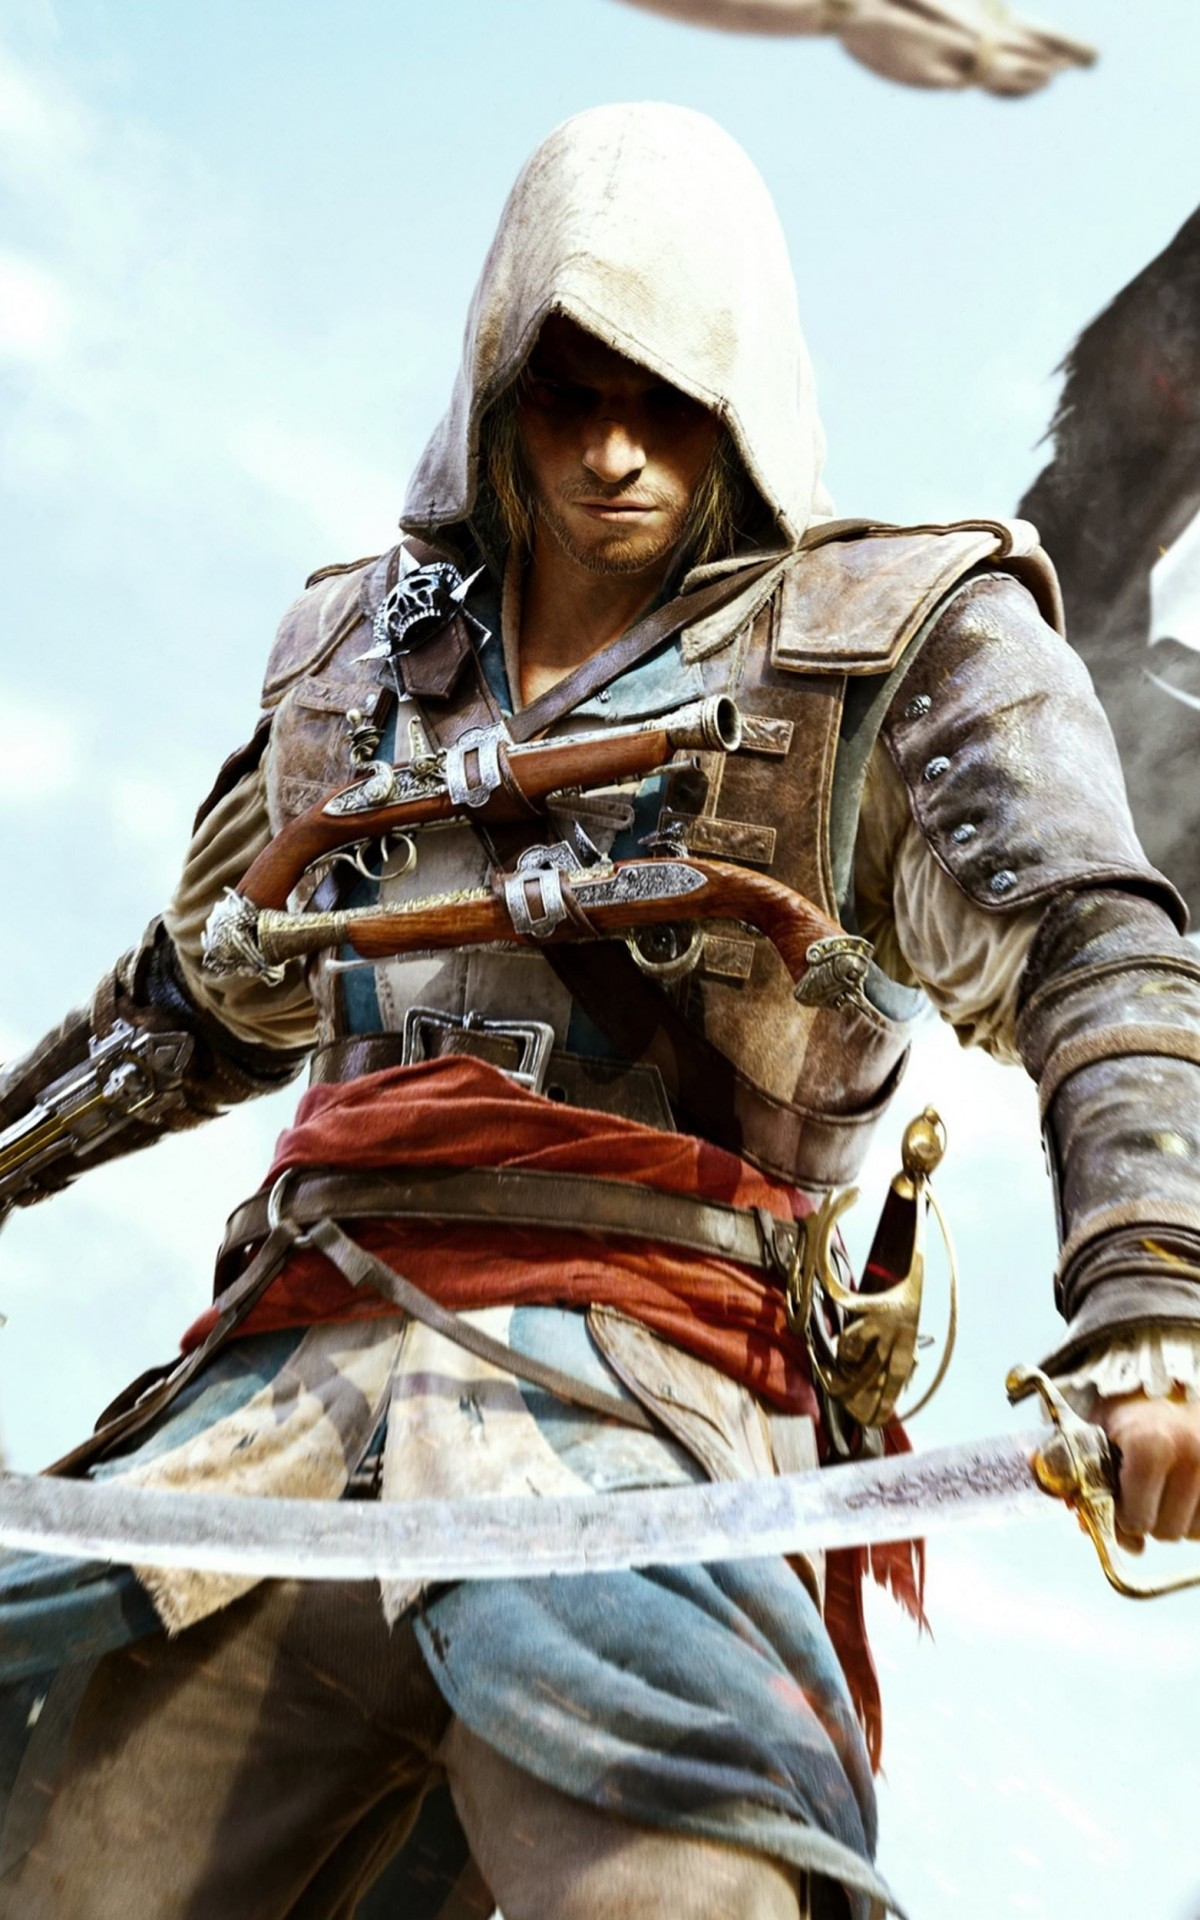 Assassin's Creed IV: Black Flag Wallpaper for Amazon Kindle Fire HDX